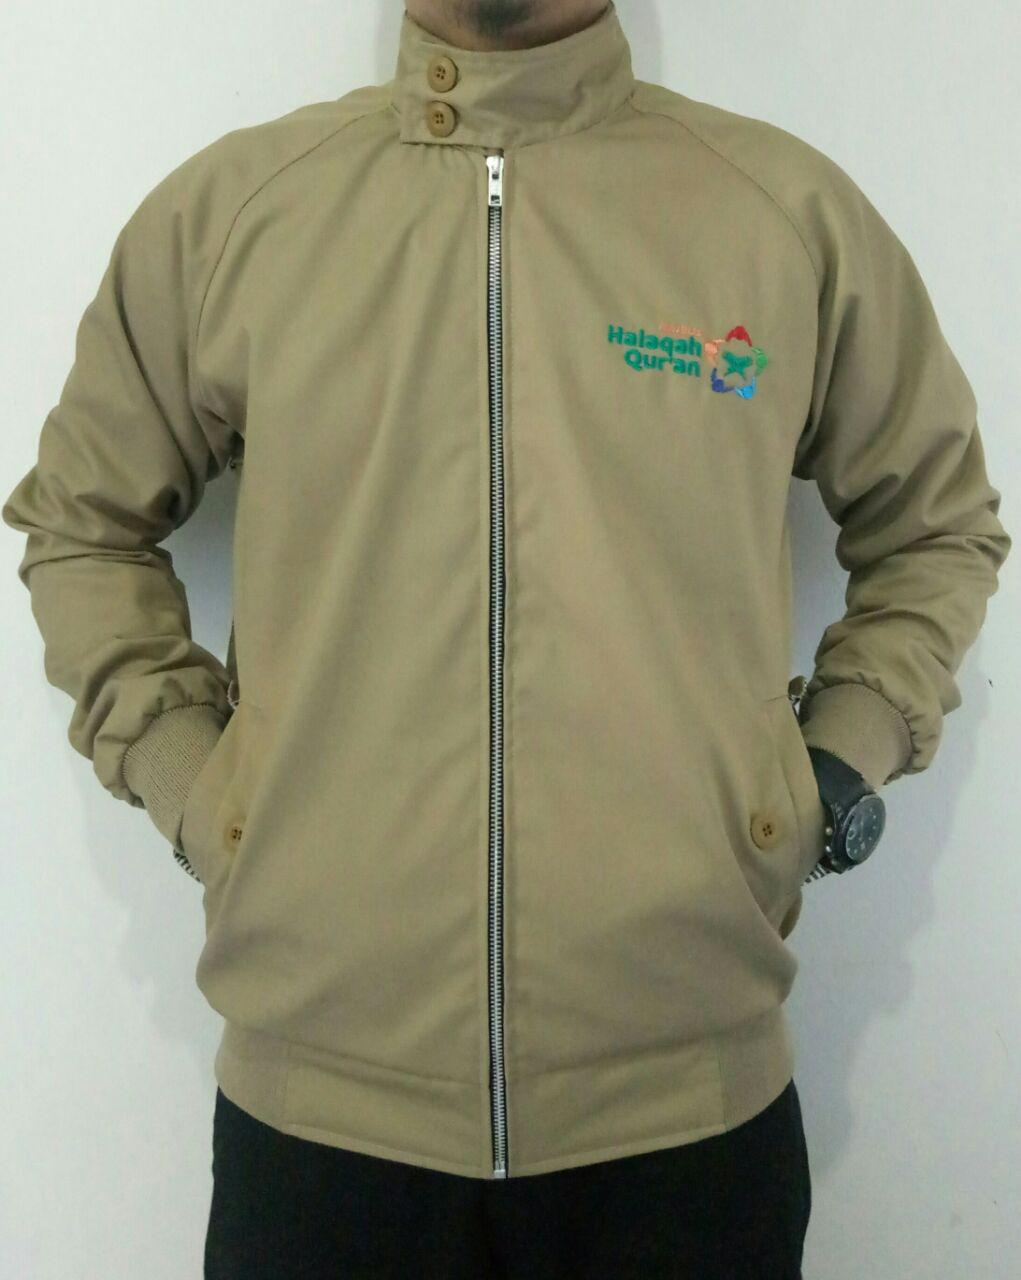 jaket harrington